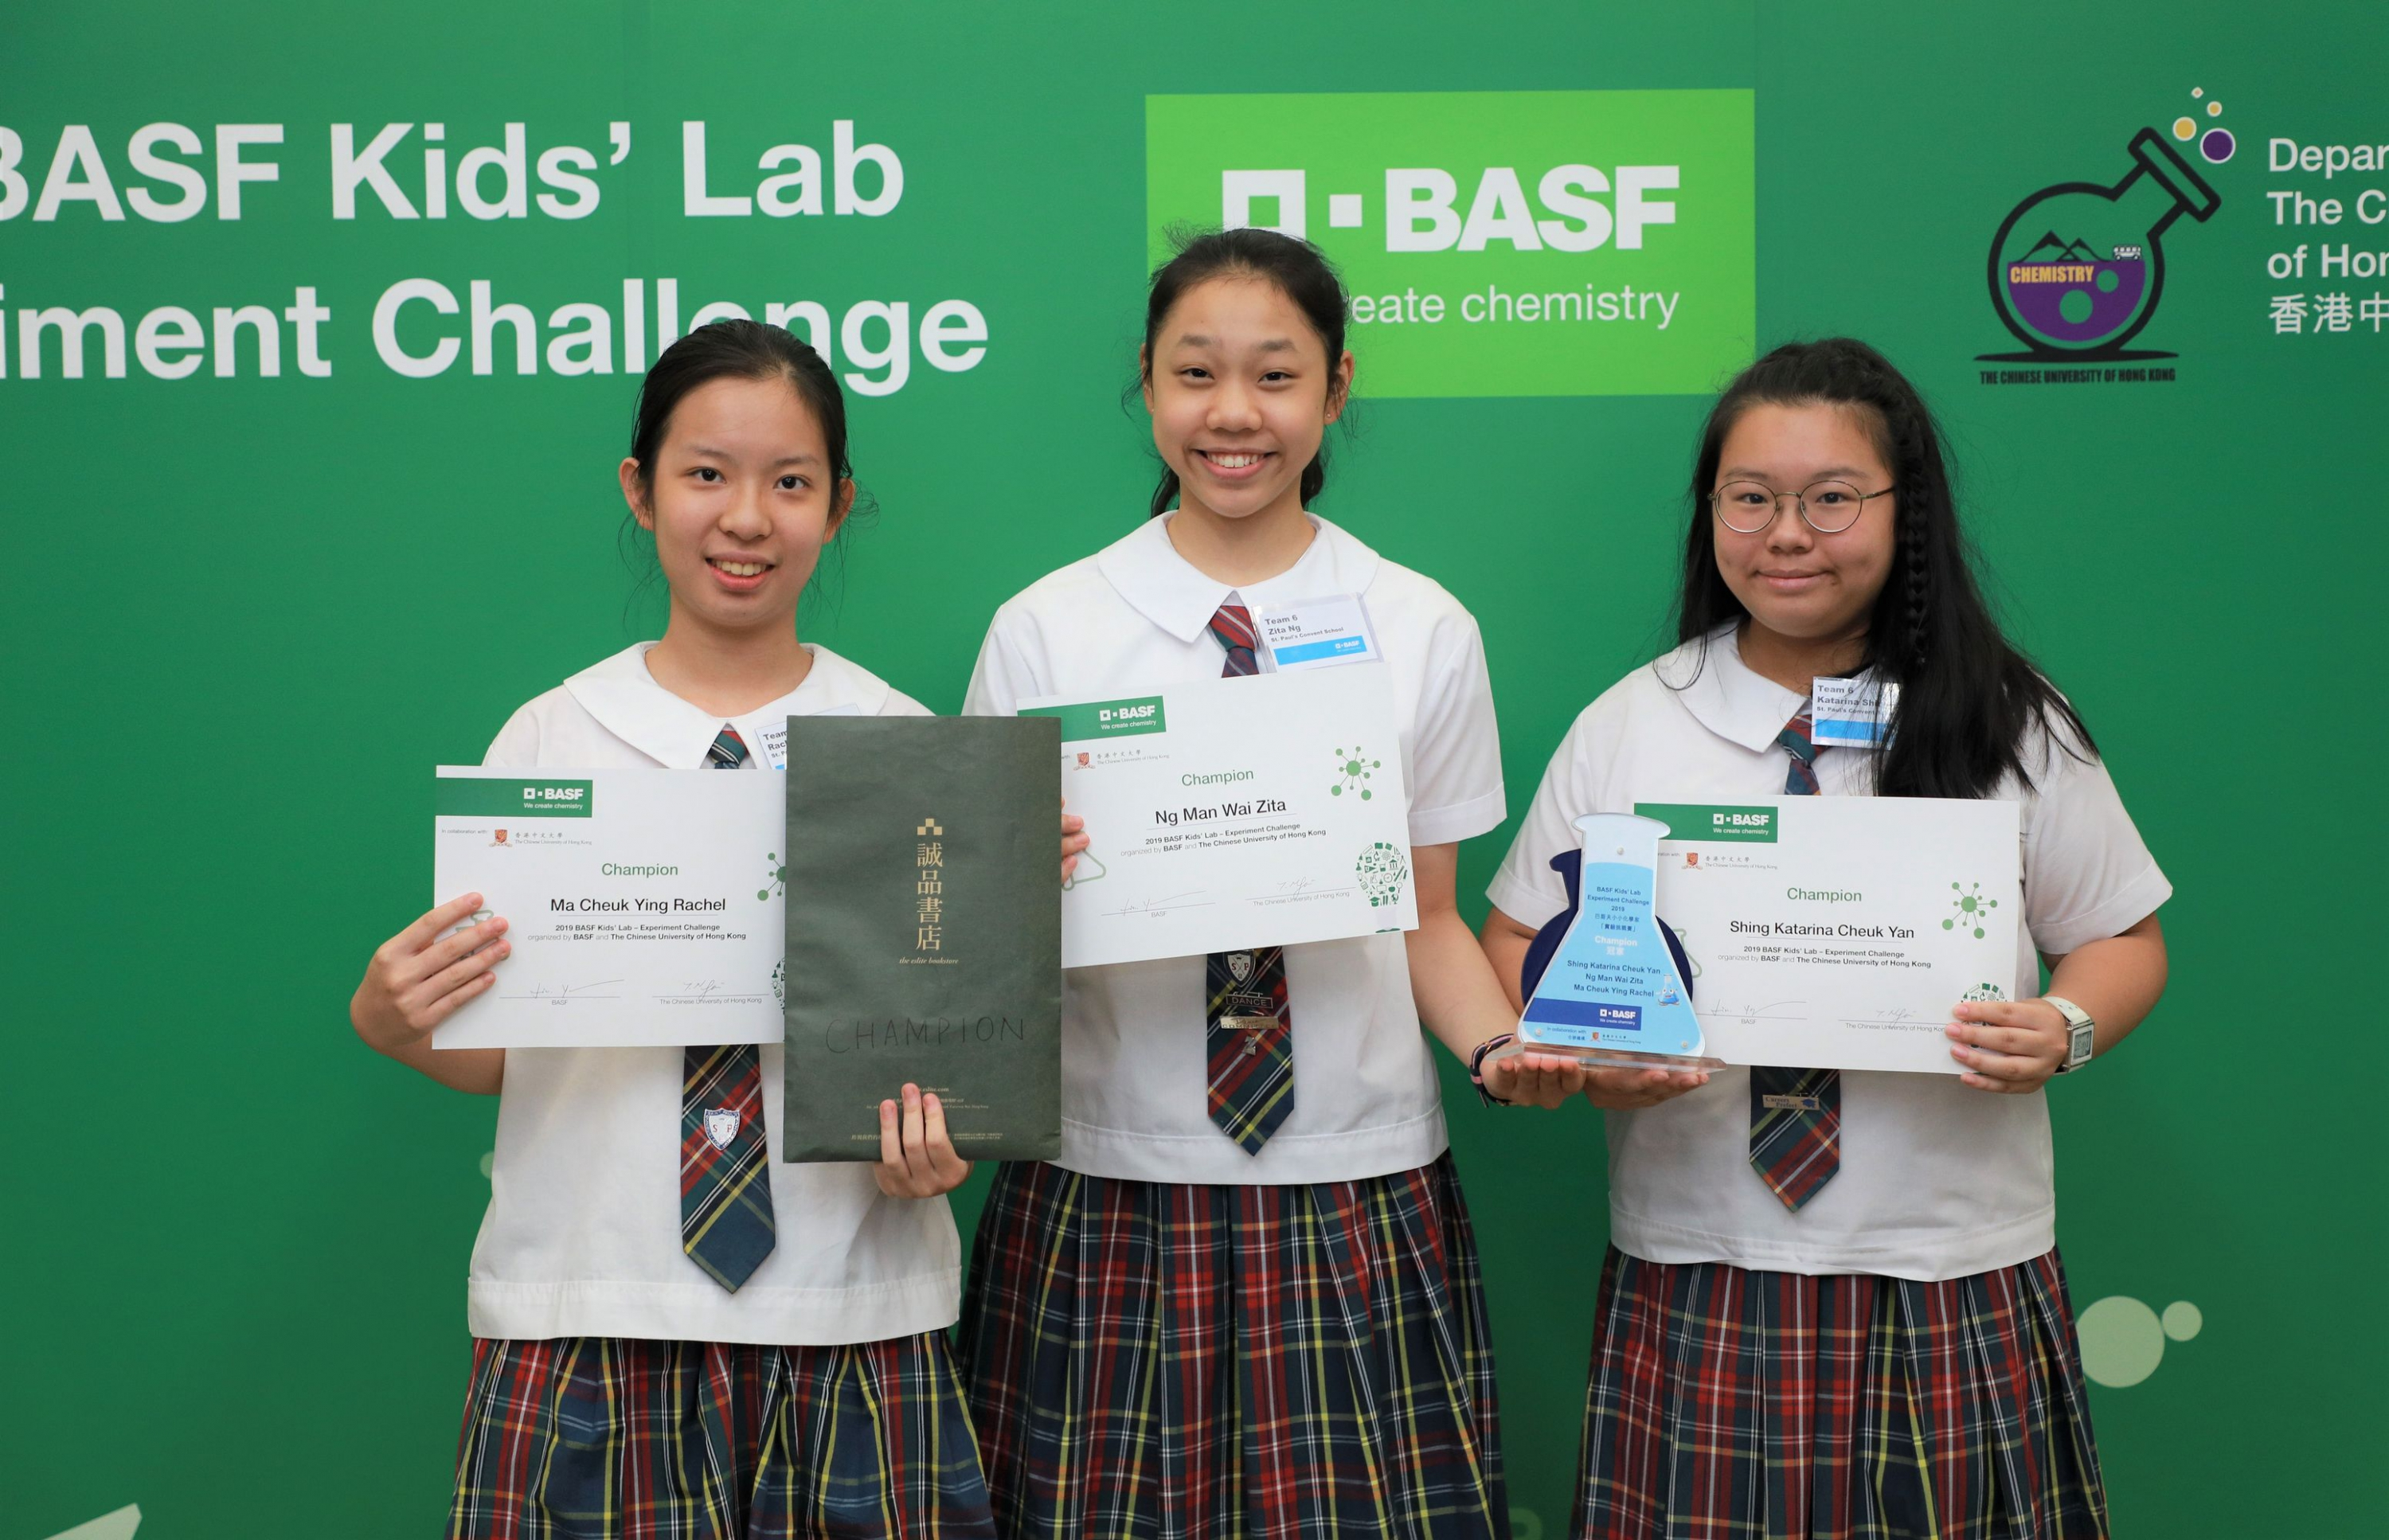 """Rachel Ma, Zita Ng, and Katarina Shing (left to right), students from St. Paul's Convent School won the BASF Kids' Lab Experiment Challenge 2019 with their safe and interesting experiment, """"Artificial Leaf""""."""